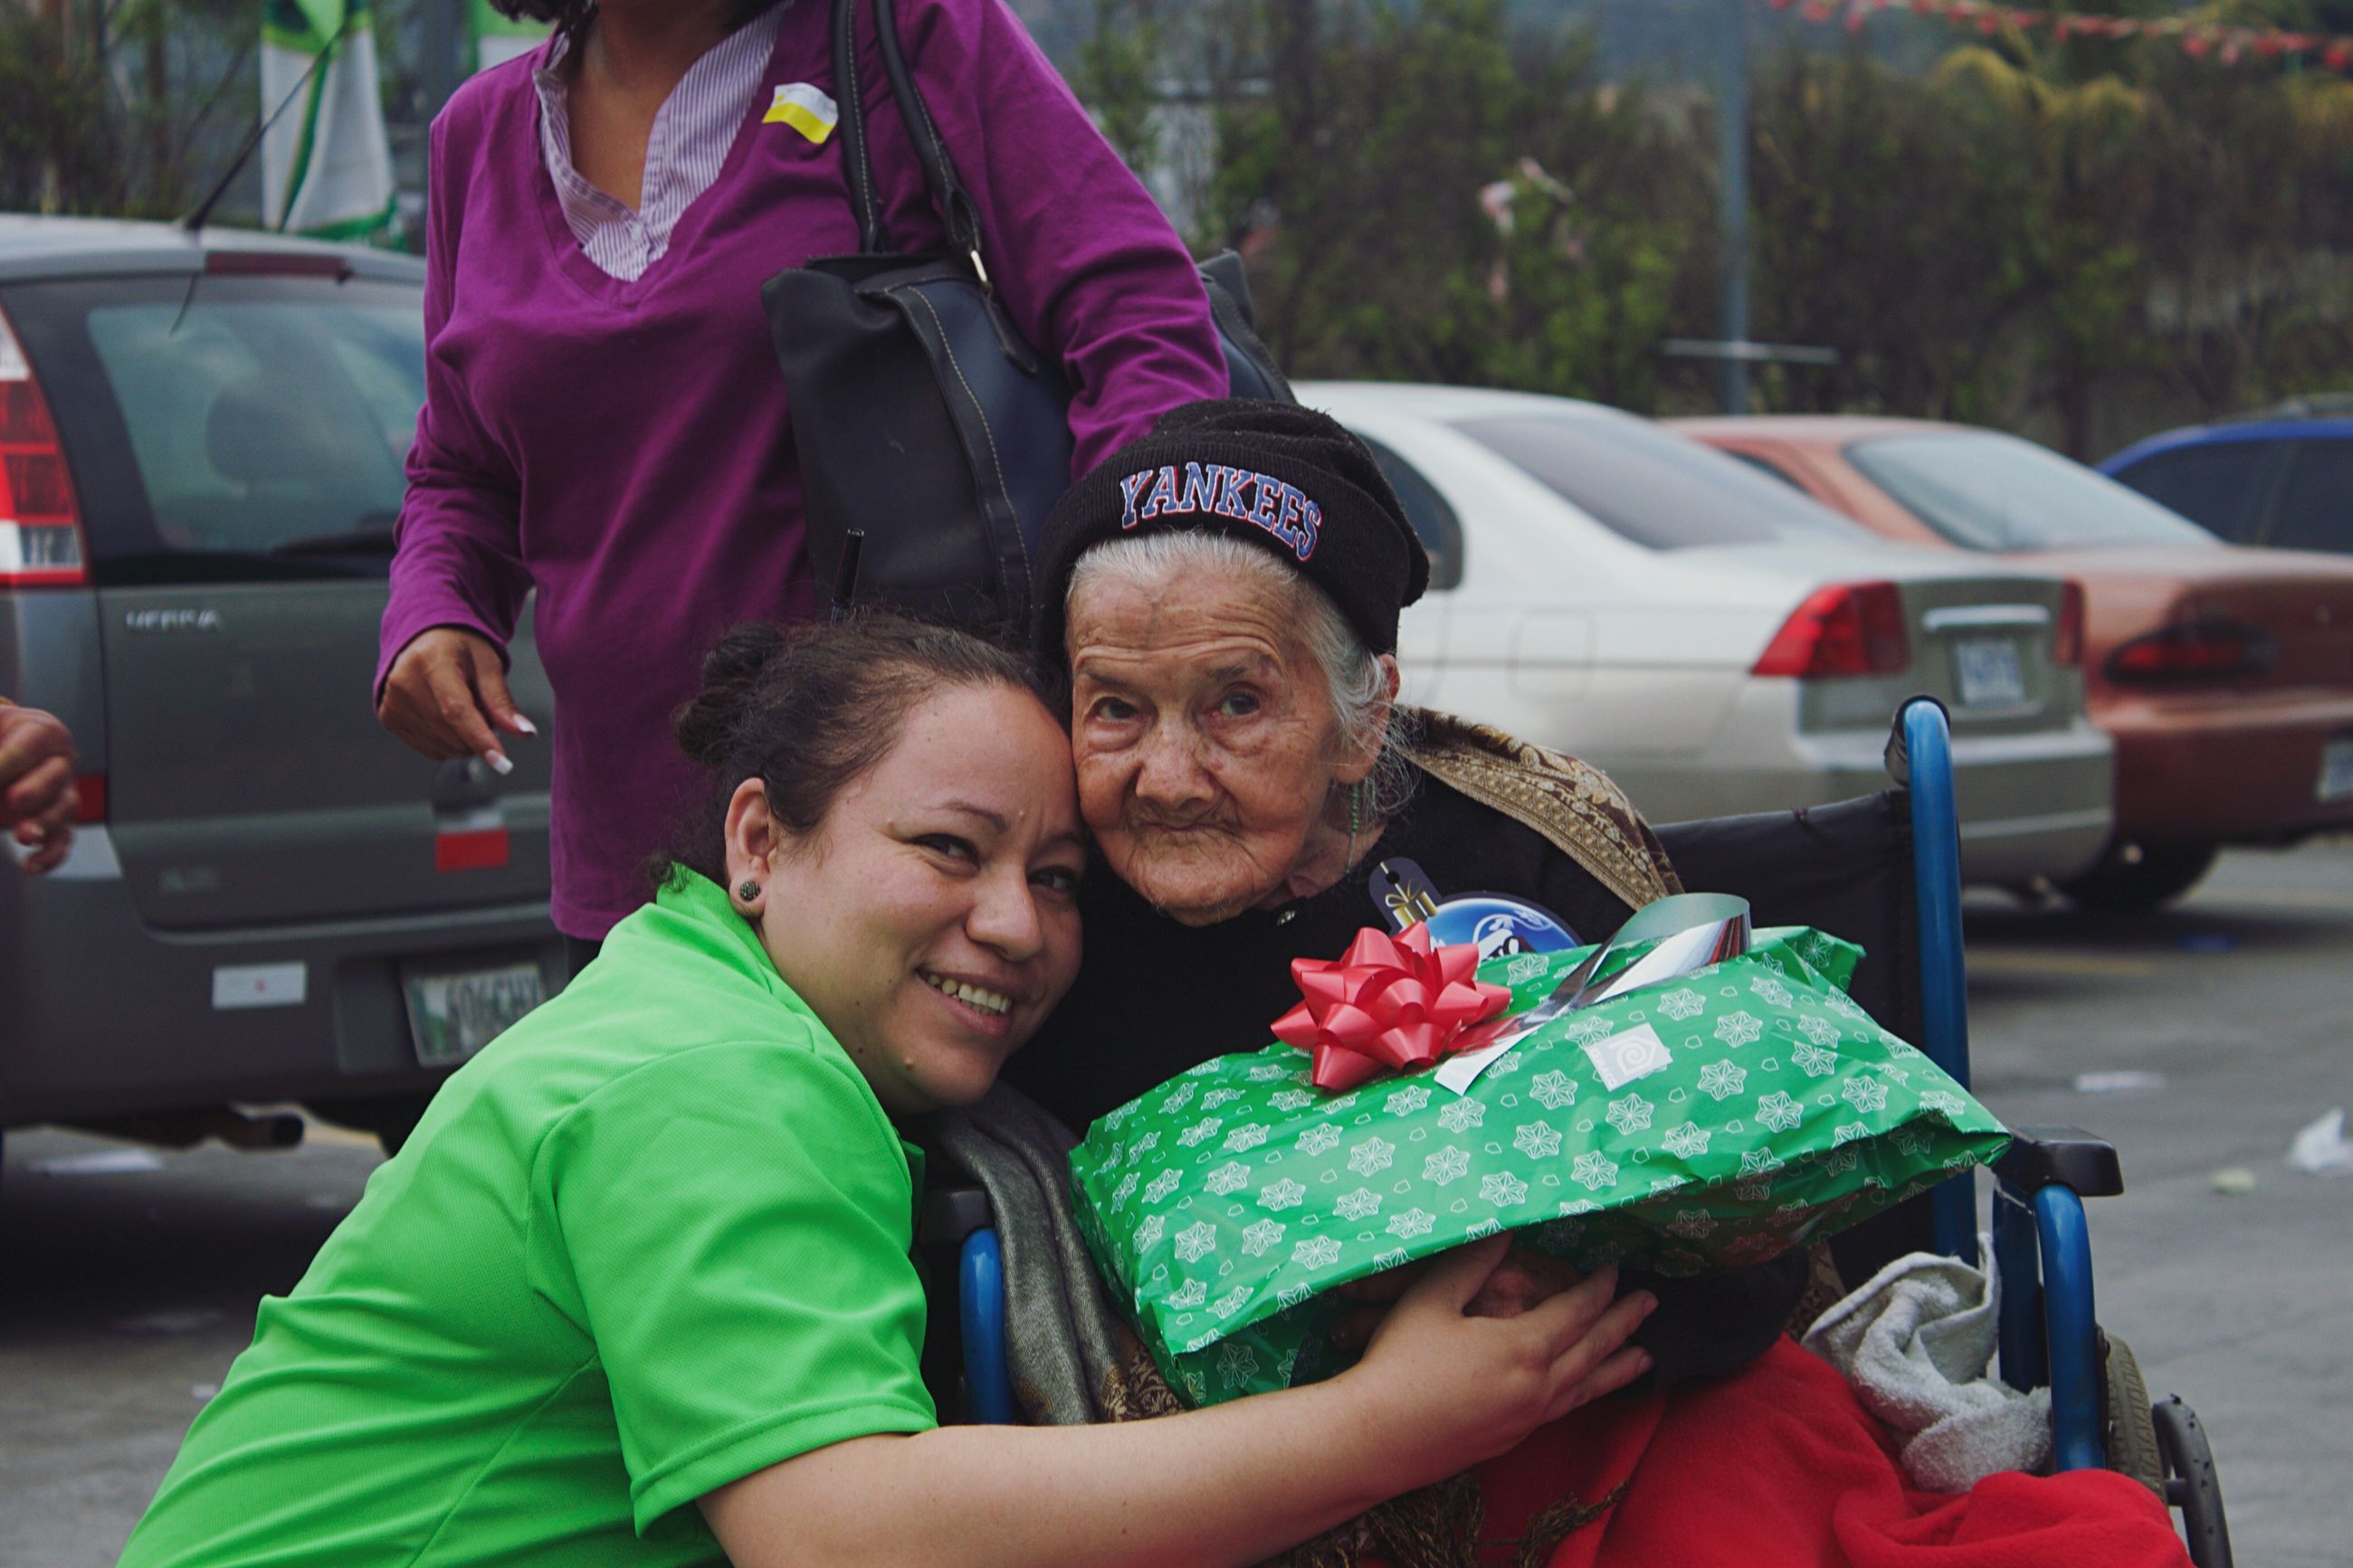 two people, car, family, mature adult, love, togetherness, men, transportation, father, holiday - event, travel, vacations, mature men, child, leisure activity, packing, females, adult, parent, celebration, women, land vehicle, people, bonding, christmas, outdoors, happiness, gift, cheerful, day, smiling, christmas tree, passenger seat, close-up, unity